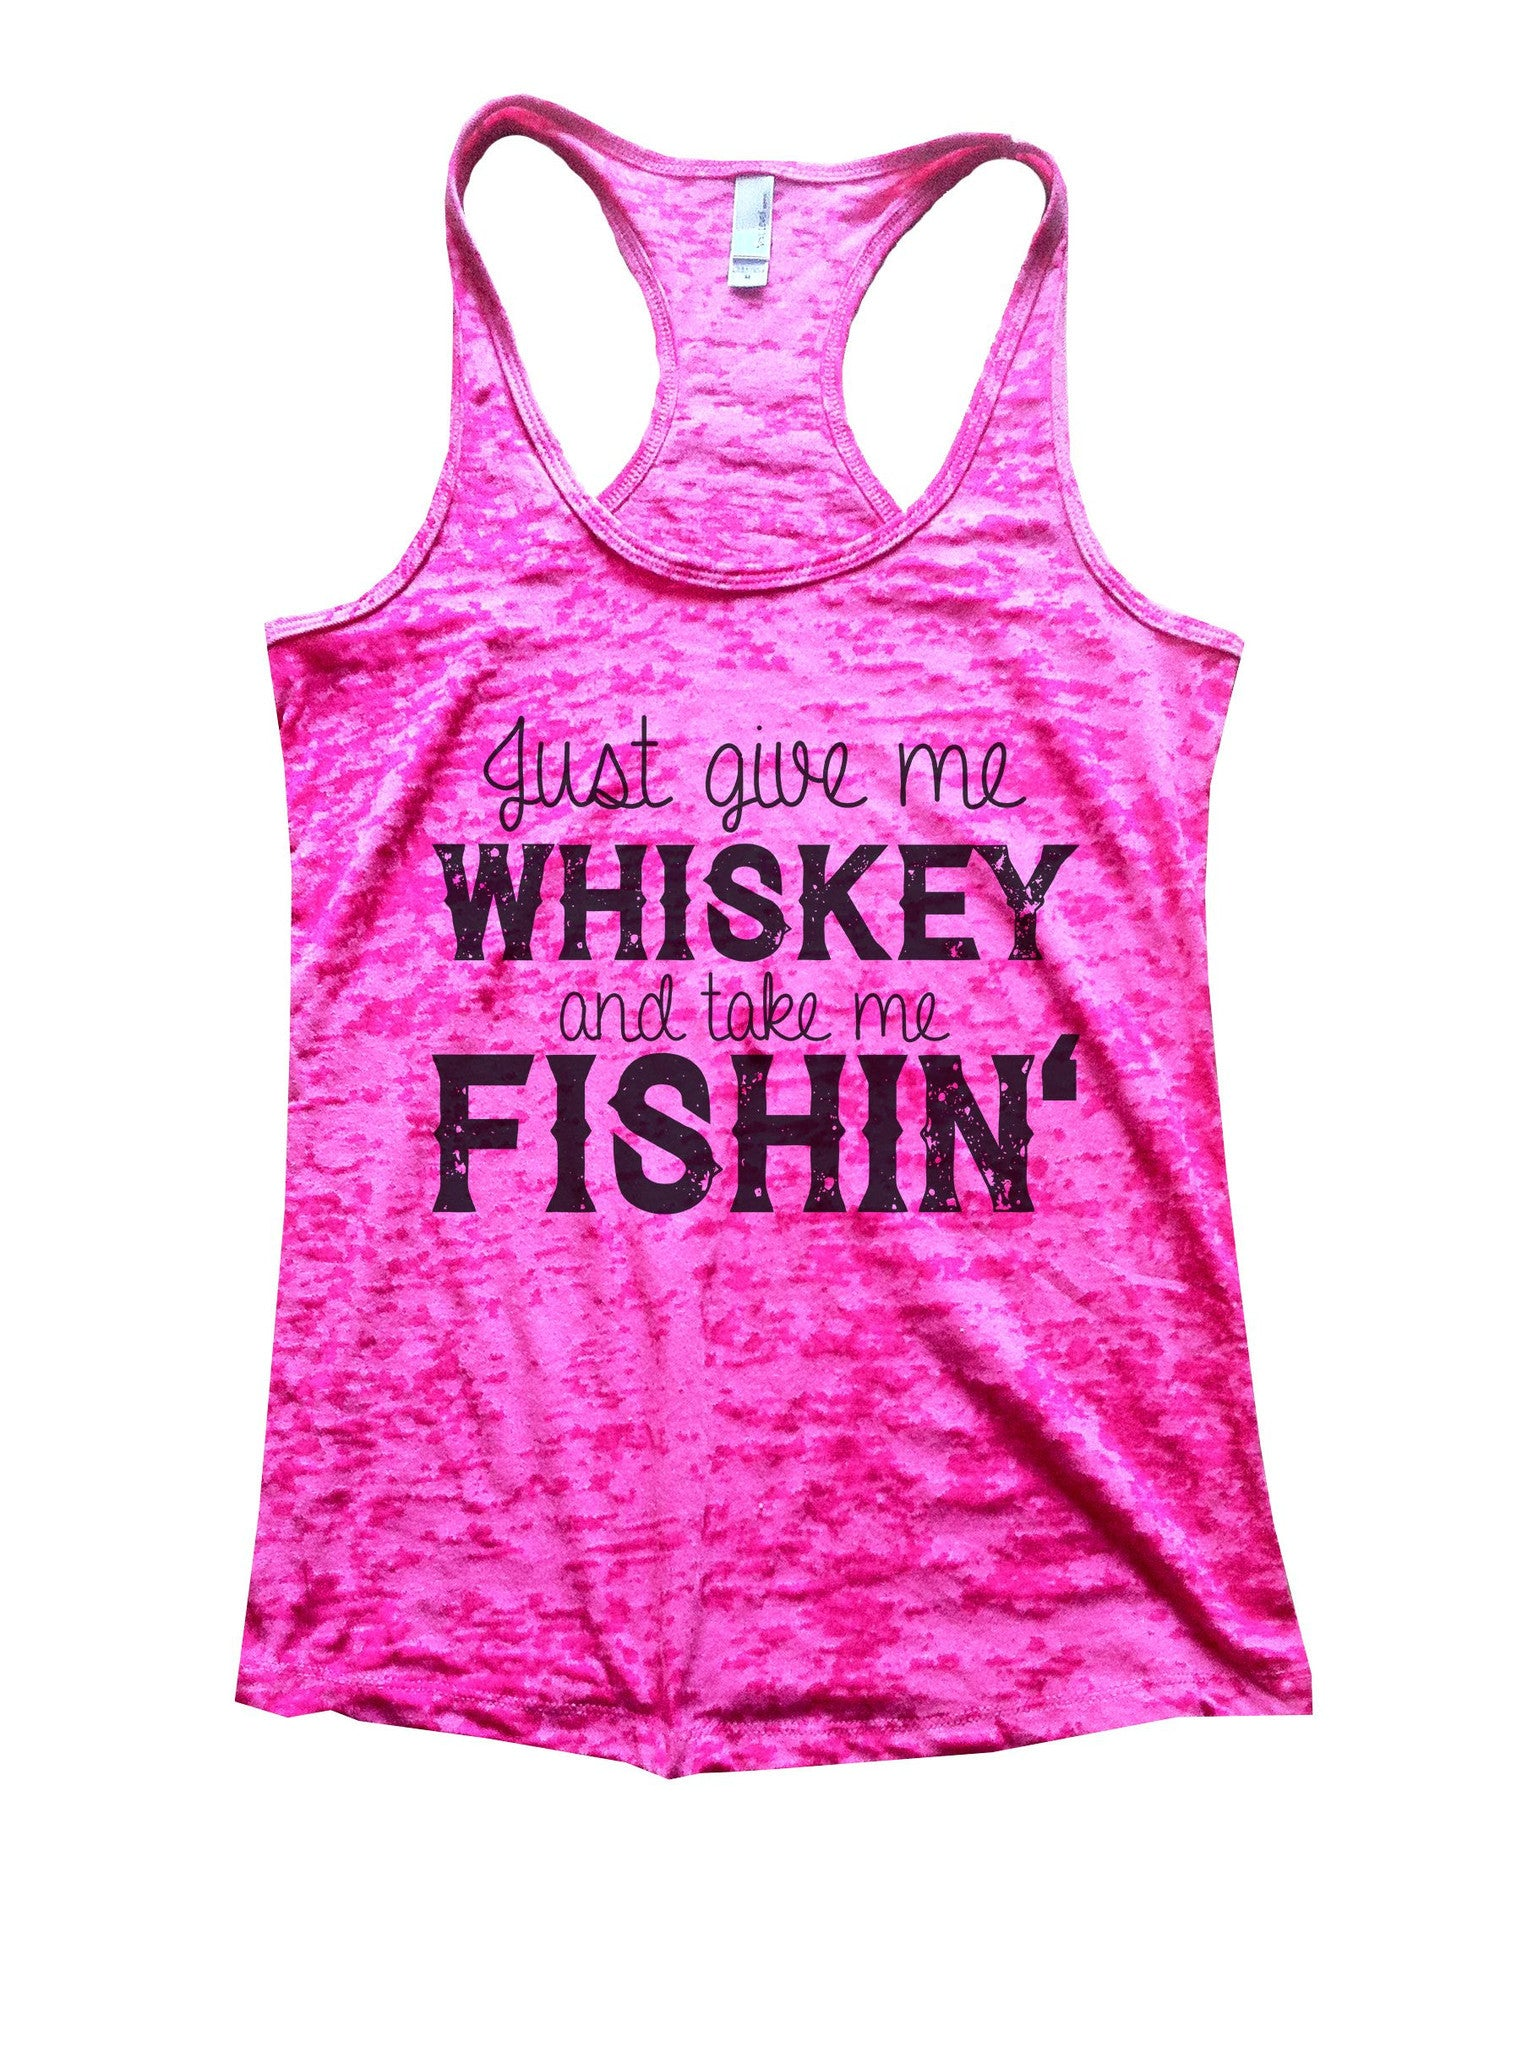 Just Give Me Whiskey And Take Me Fishin Burnout Tank Top By BurnoutTankTops.com - 1012 - Funny Shirts Tank Tops Burnouts and Triblends  - 5